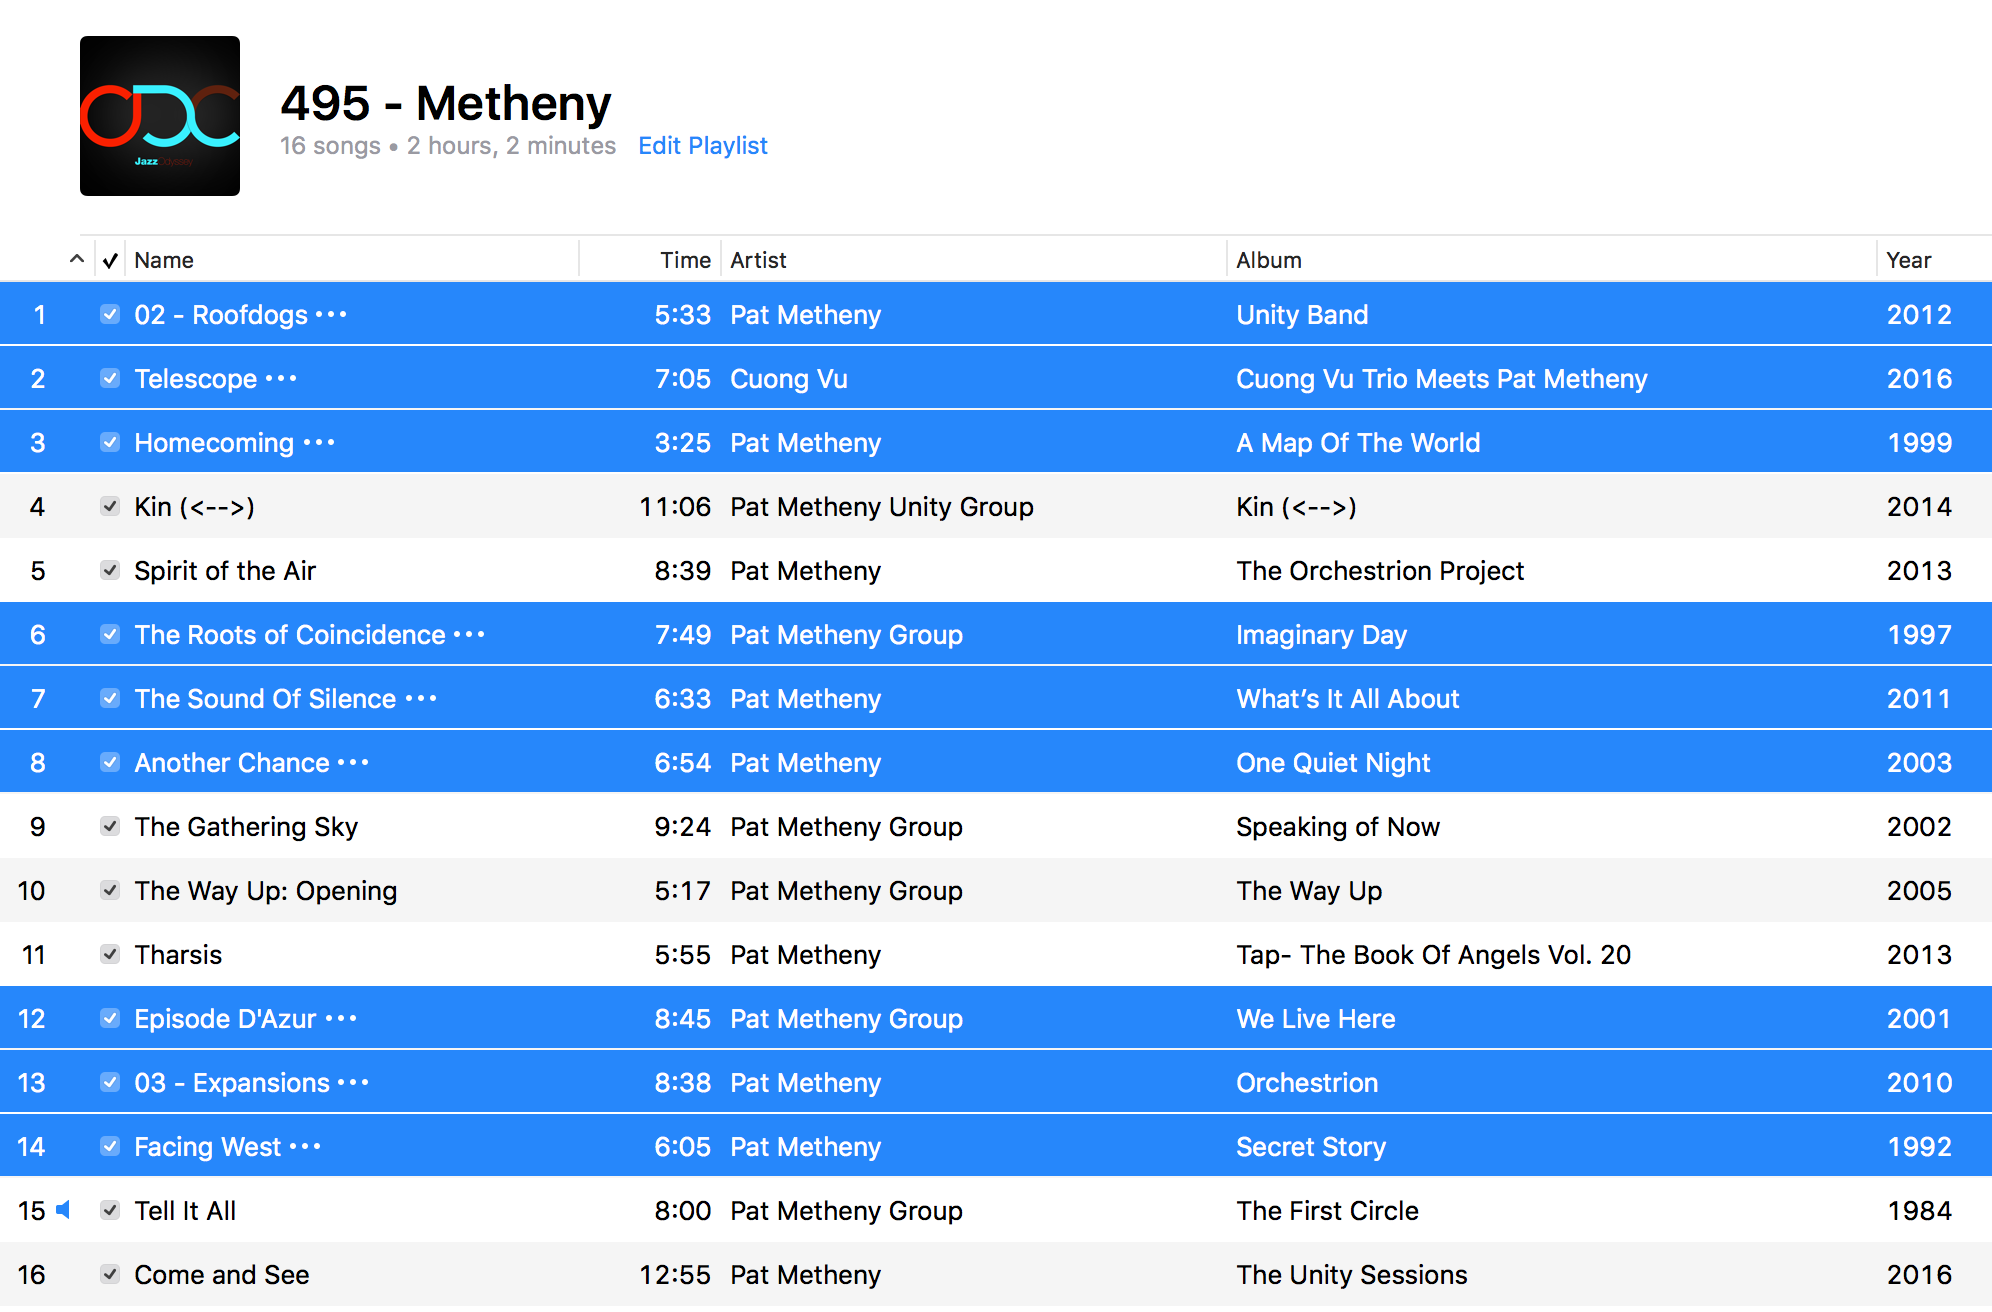 Jazz ODC #495 - Metheny - Playlist